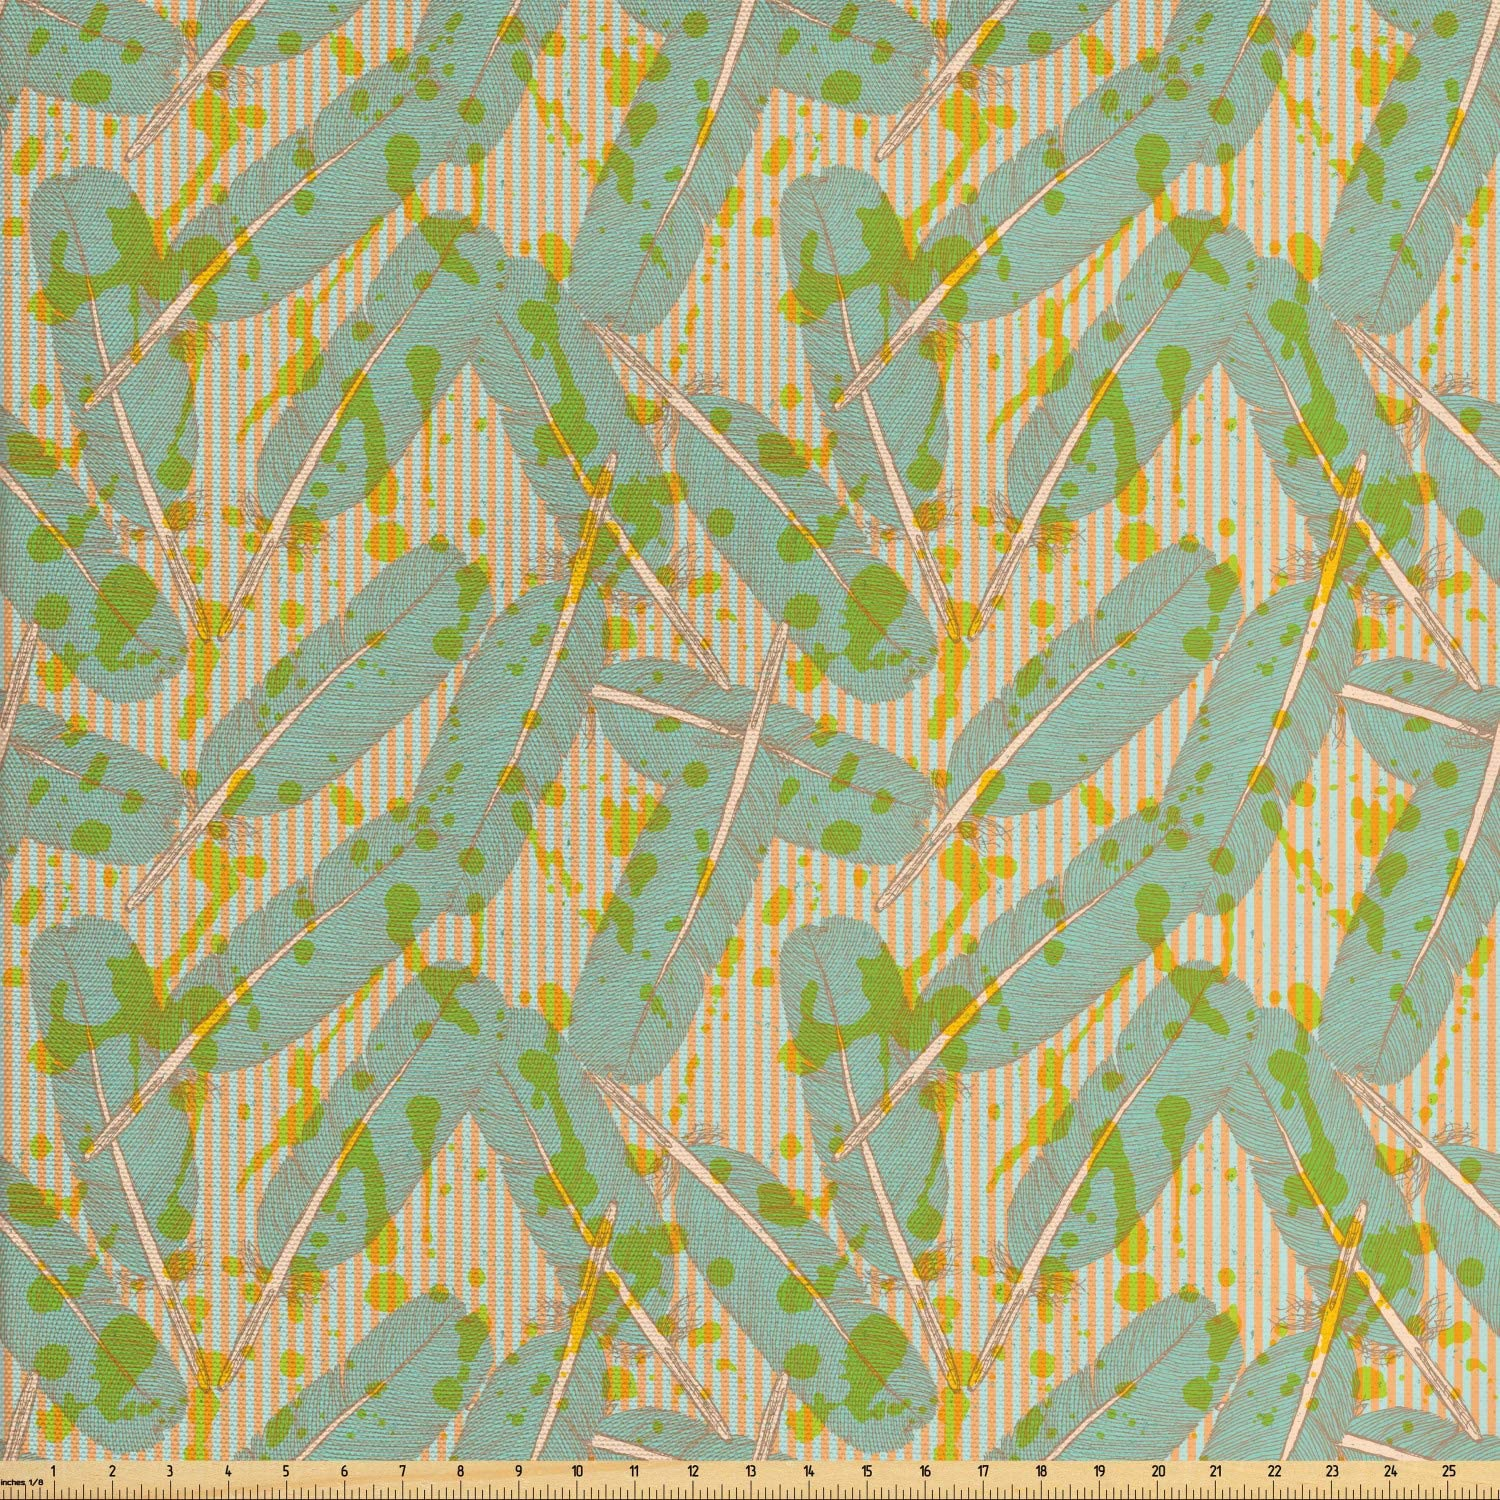 Ambesonne Grunge Fabric by The Yard, Pastel Exotic Jungle Leaves Paint Brushstroke Effects on Vintage Stripes, Decorative Fabric for Upholstery and Home Accents, 1 Yard, Salmon Seafoam Green